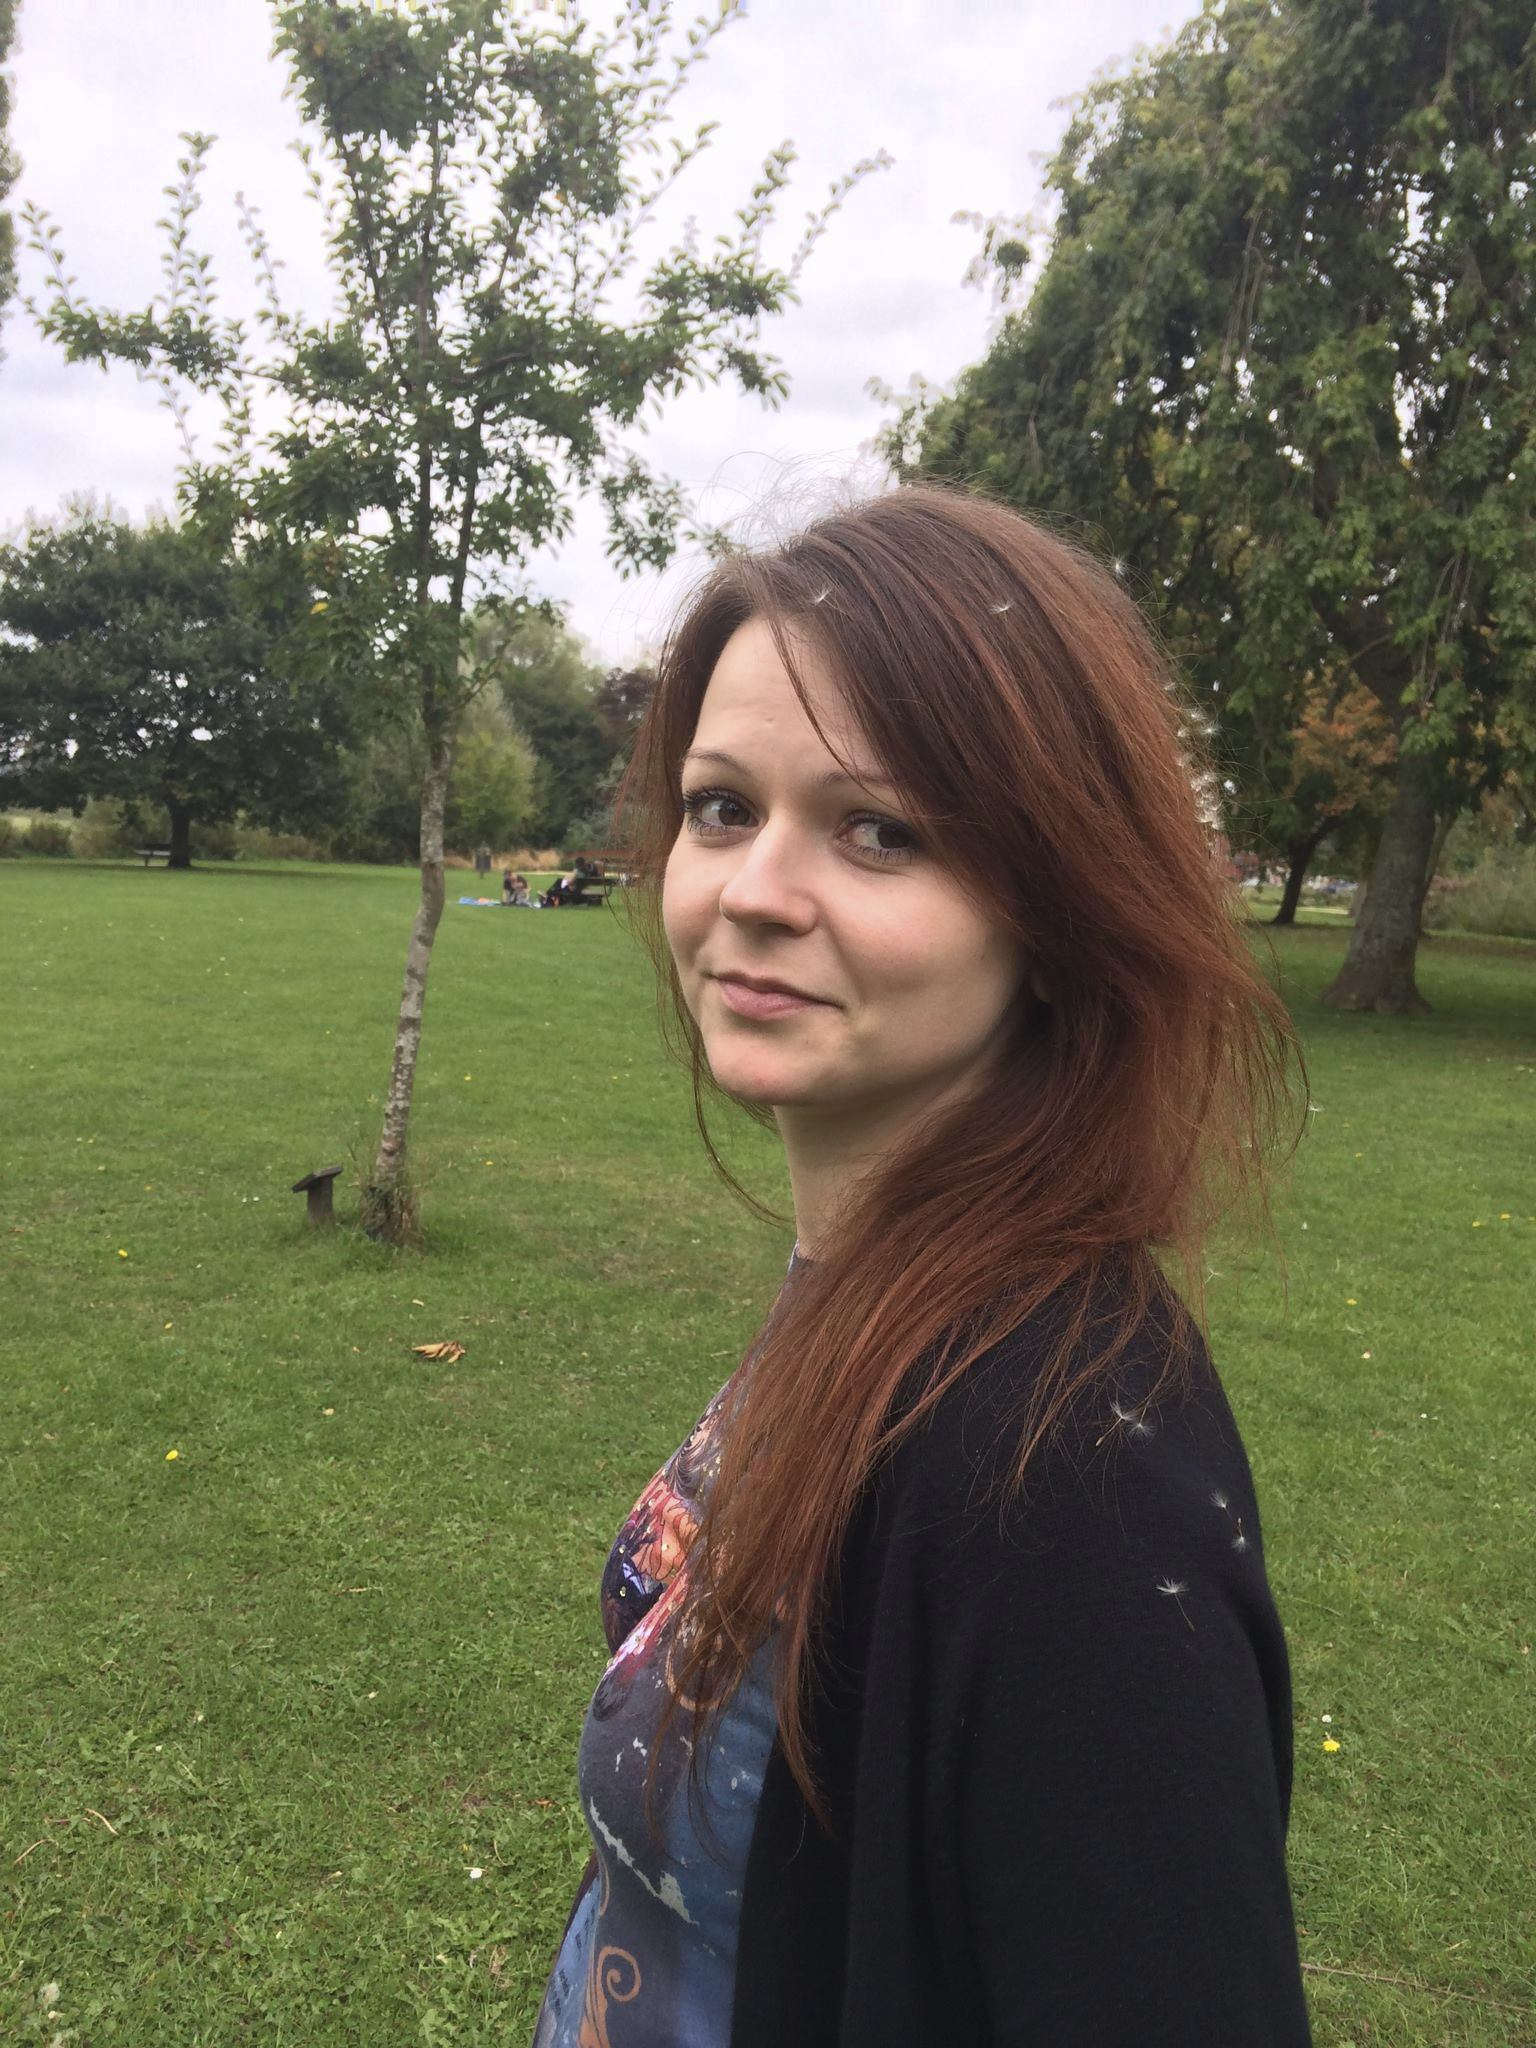 Yulia Skripal the daughter of former Russian Spy Sergei Skripal, is seen on a photo taken from her Facebook account.